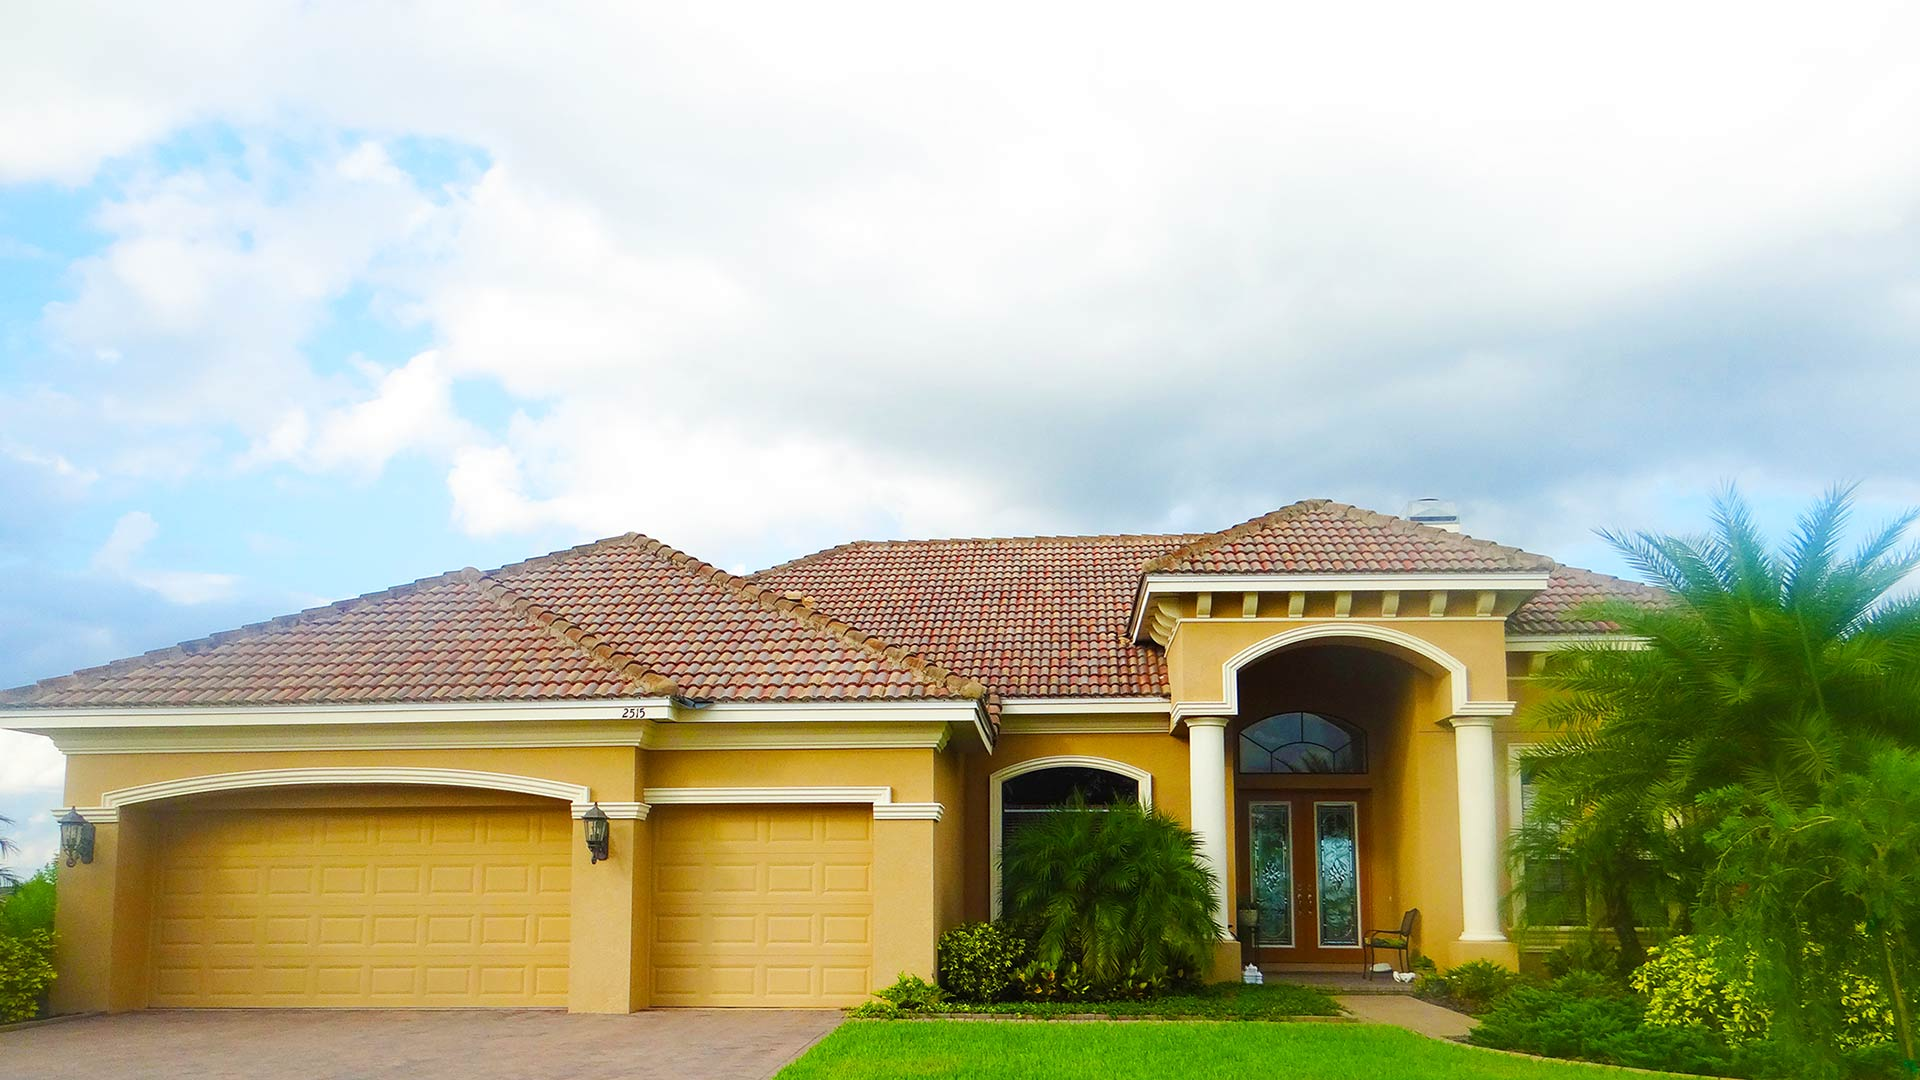 Winter Haven home after receiving roof leak repair services from True Builders.